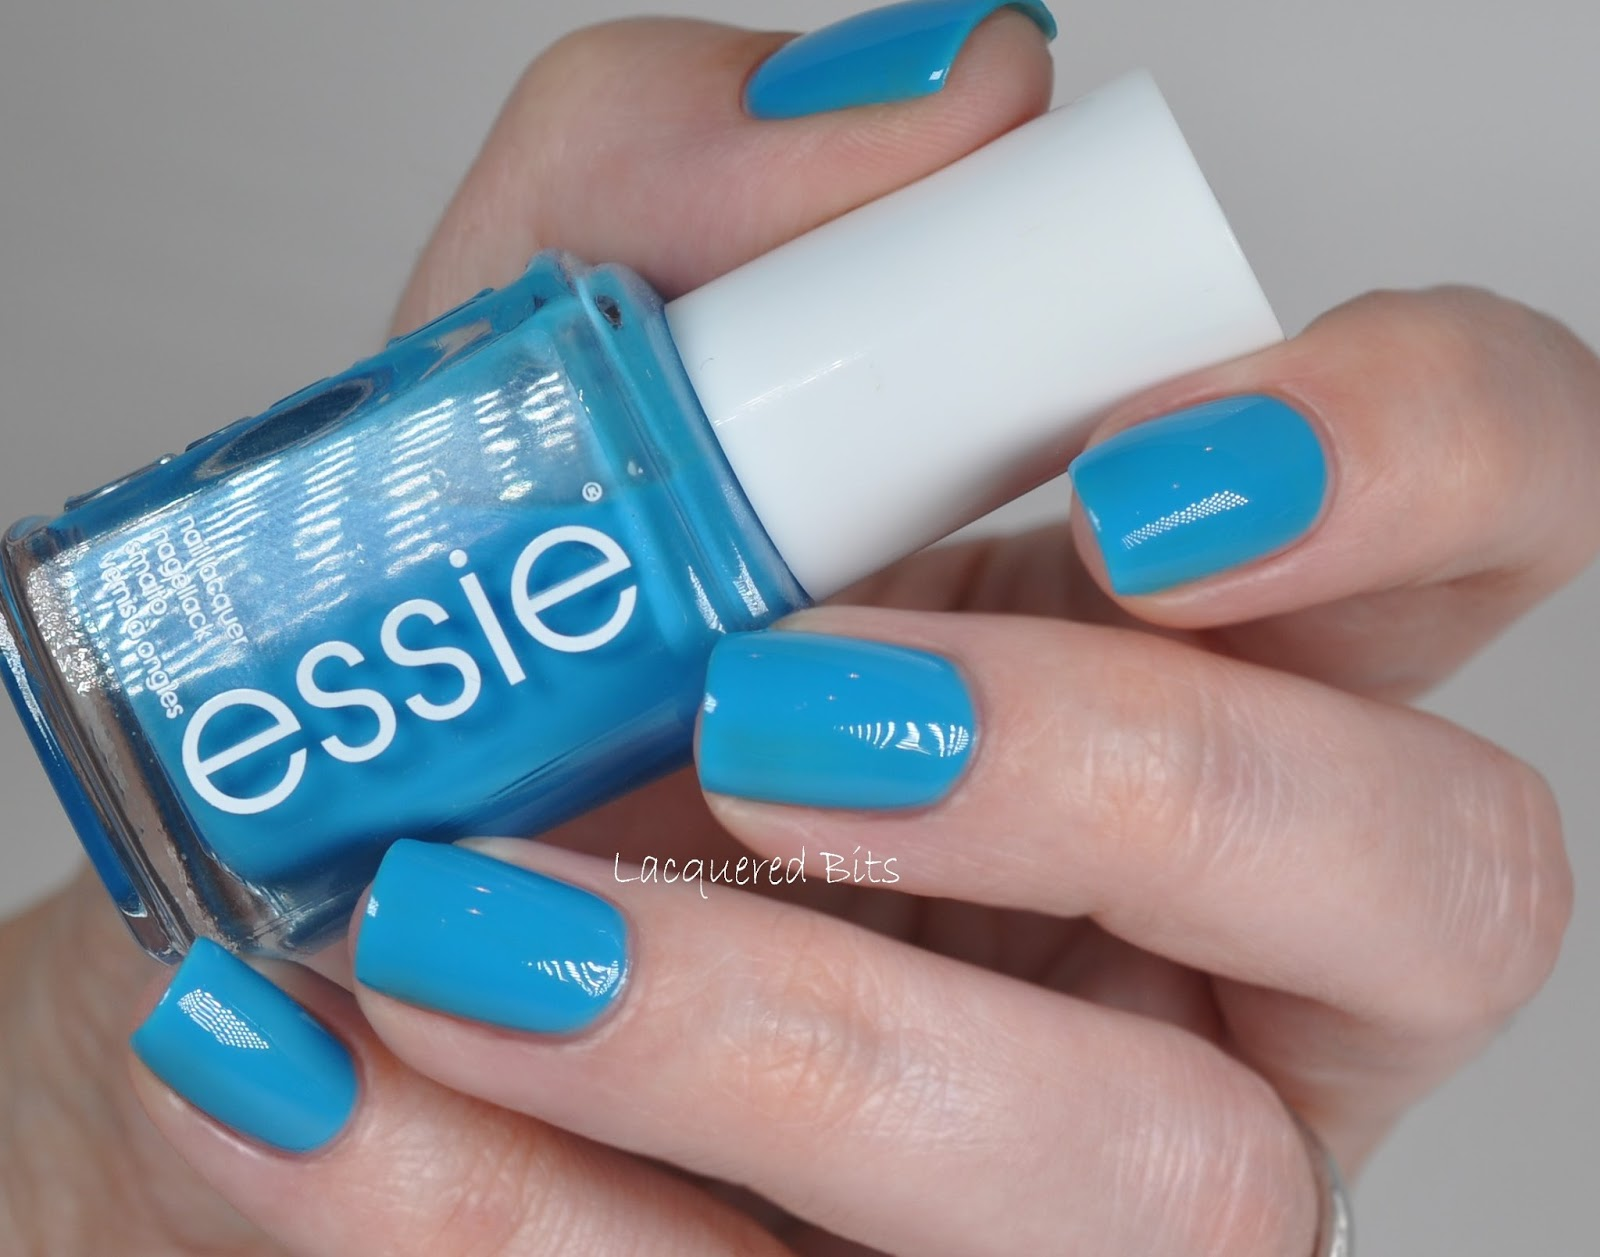 Strut Your Stuff Essie Summer 2014